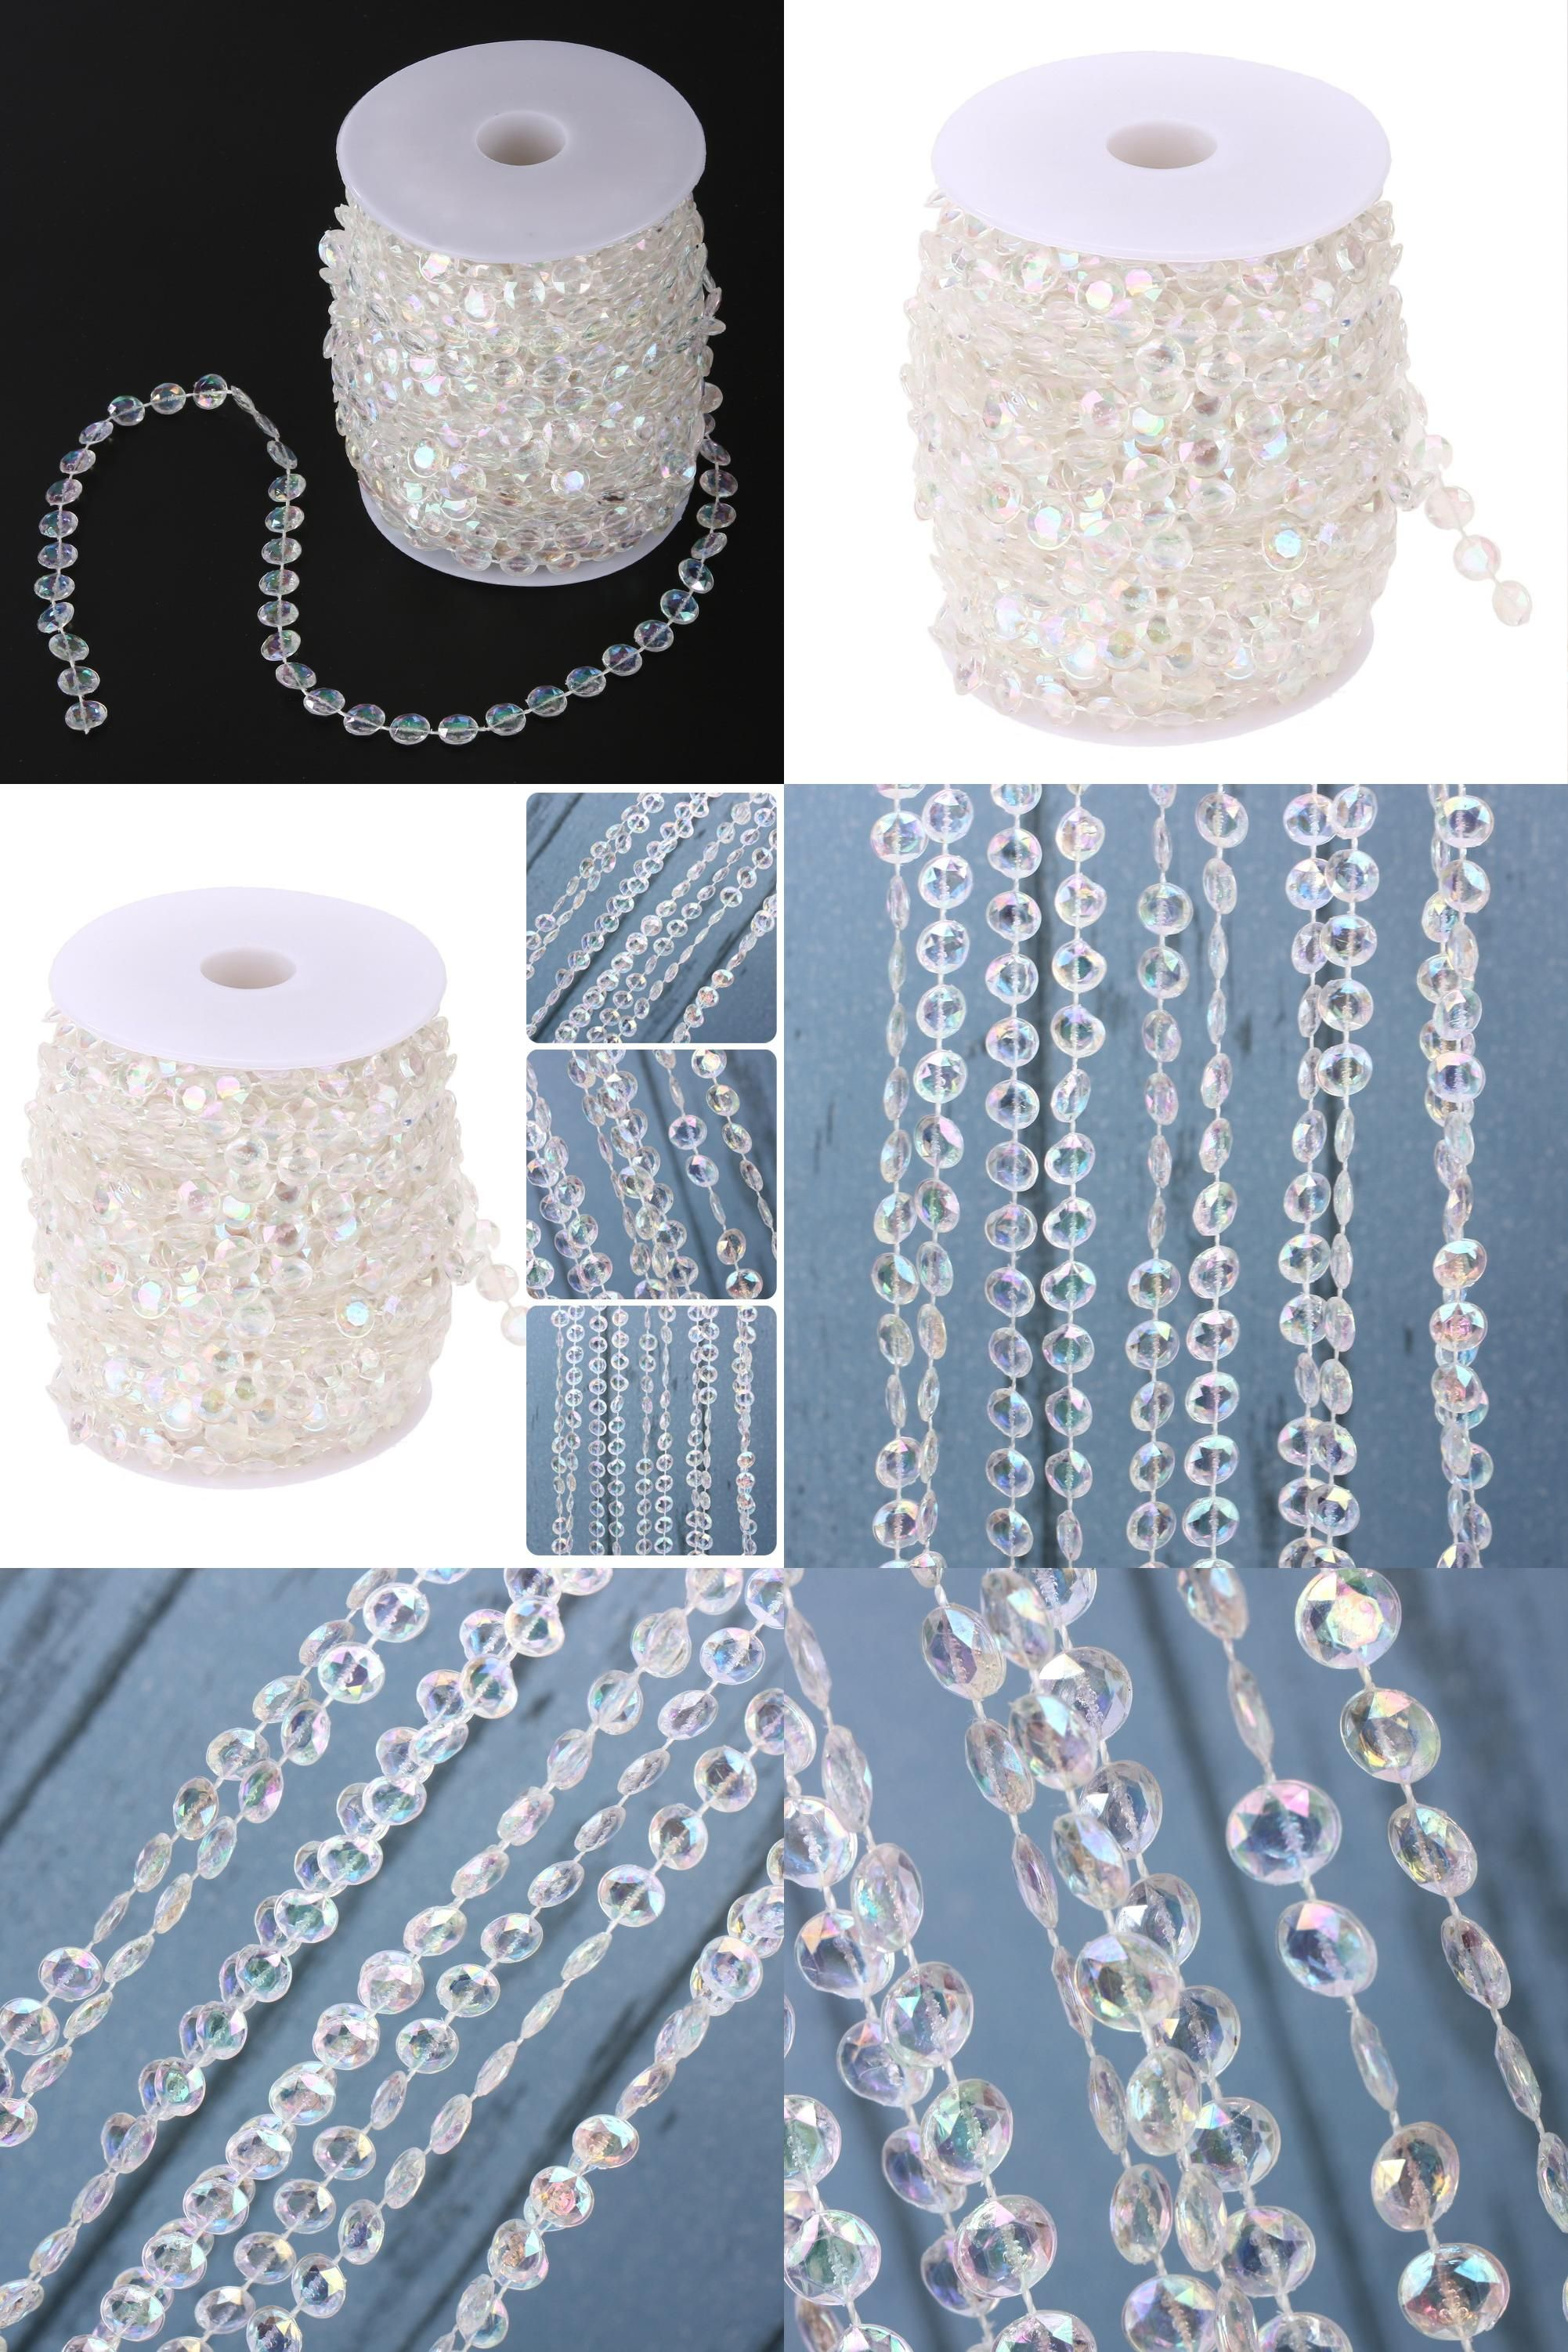 [Visit To Buy] 30M Acrylic Crystal Curtain Garland Diamond Acrylic